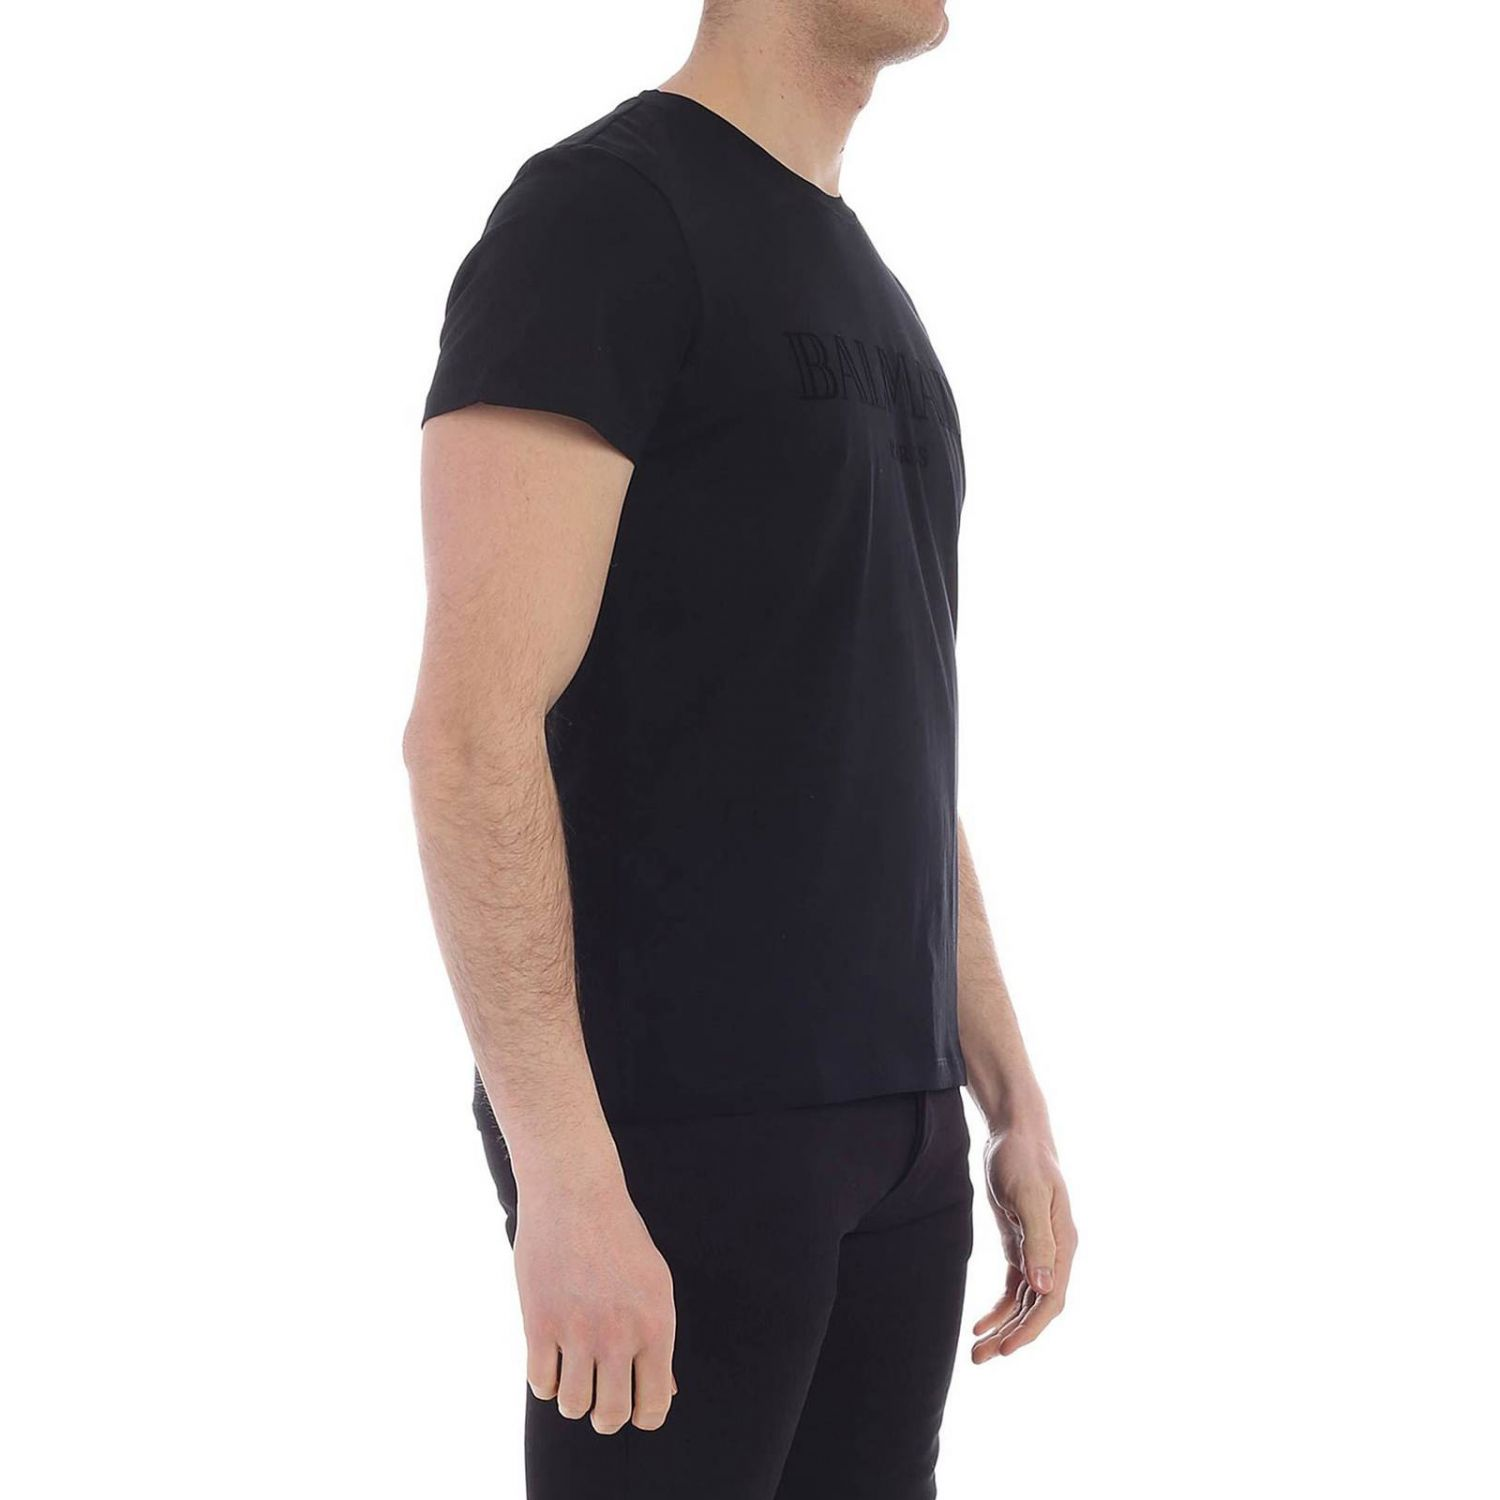 T-shirt men Balmain black 2